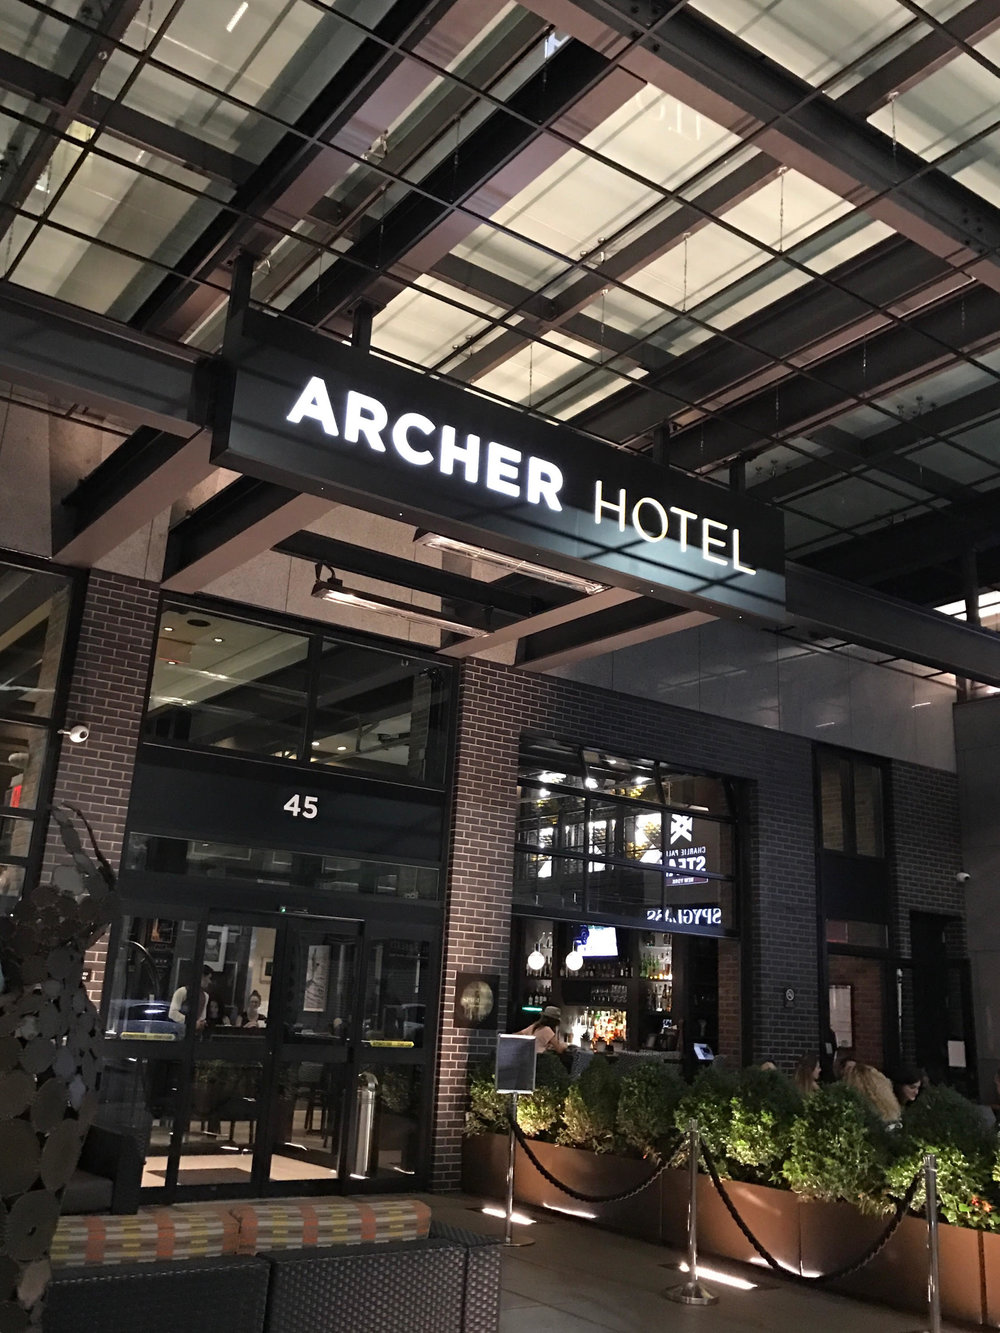 Archer Hotel - New York City